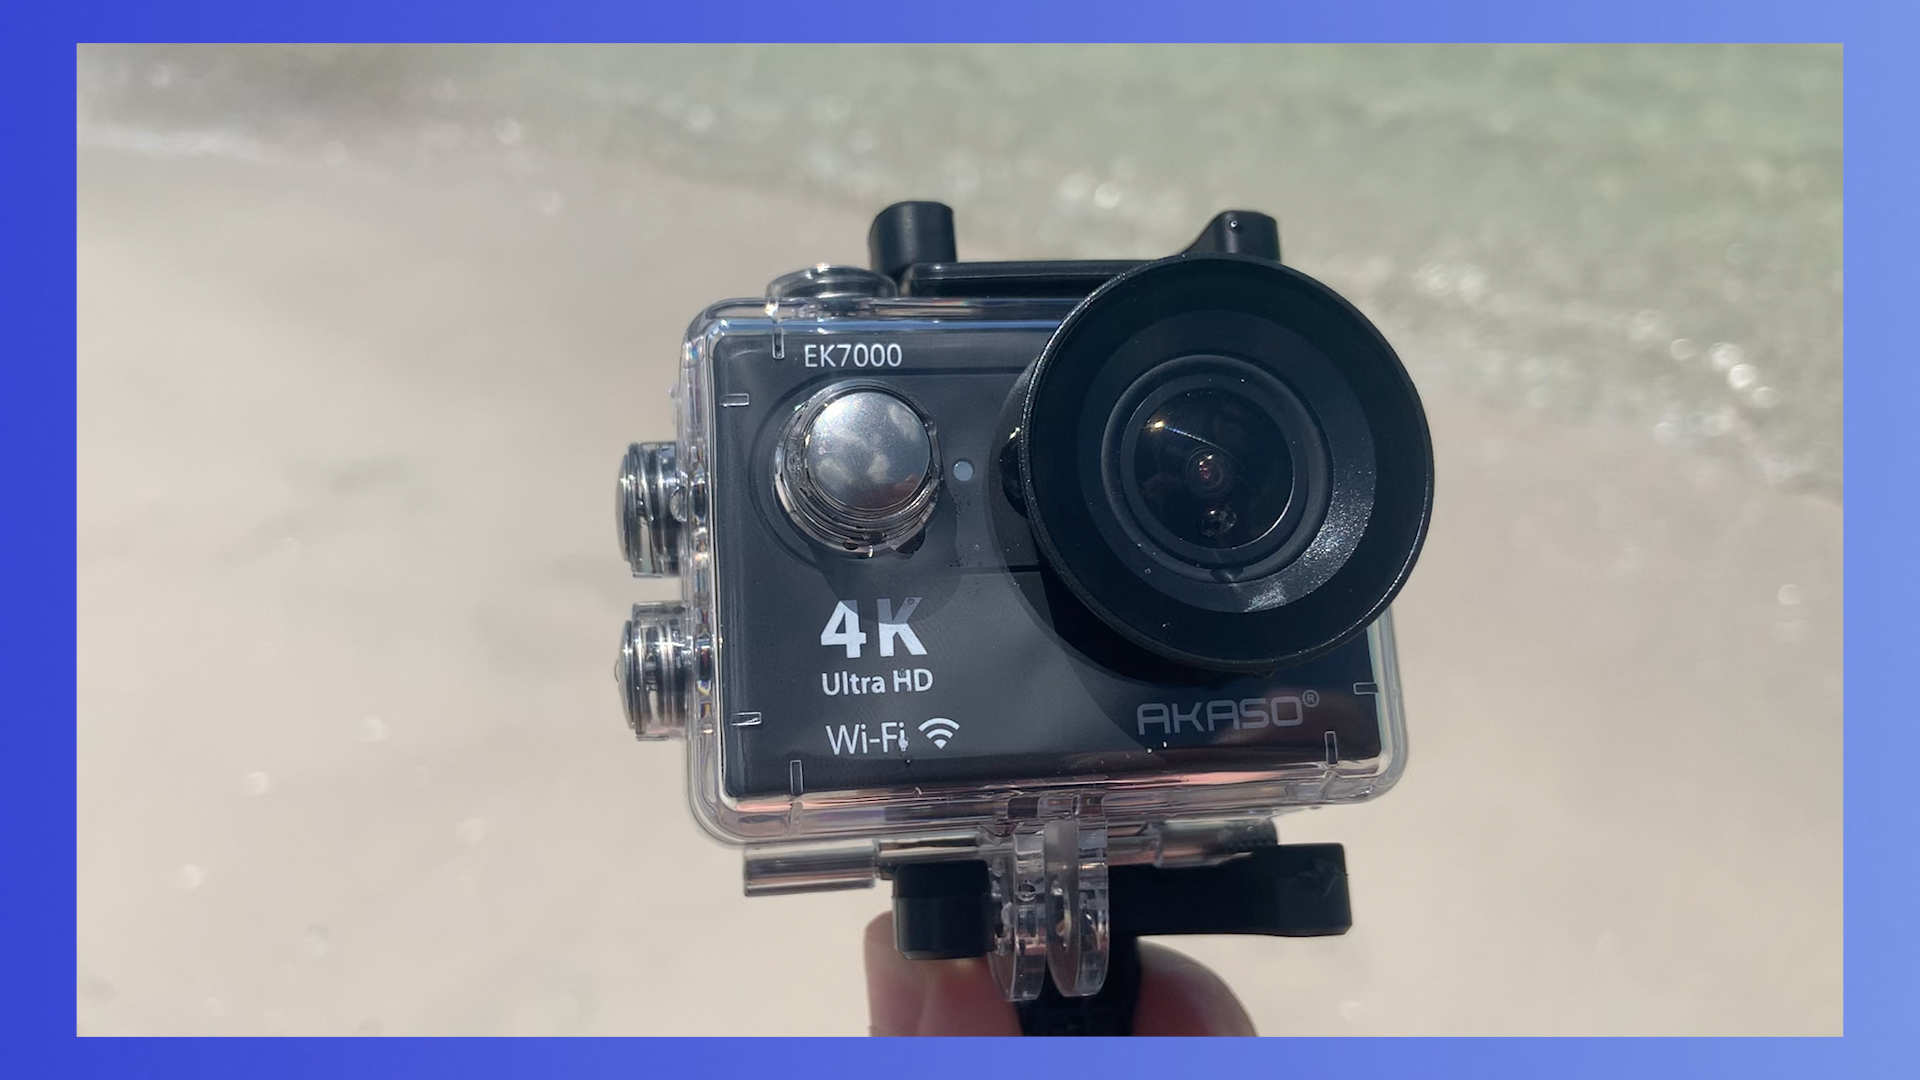 Shoppers say this $50 waterproof action camera is just as effective as the GoPro: 'No difference in quality!'